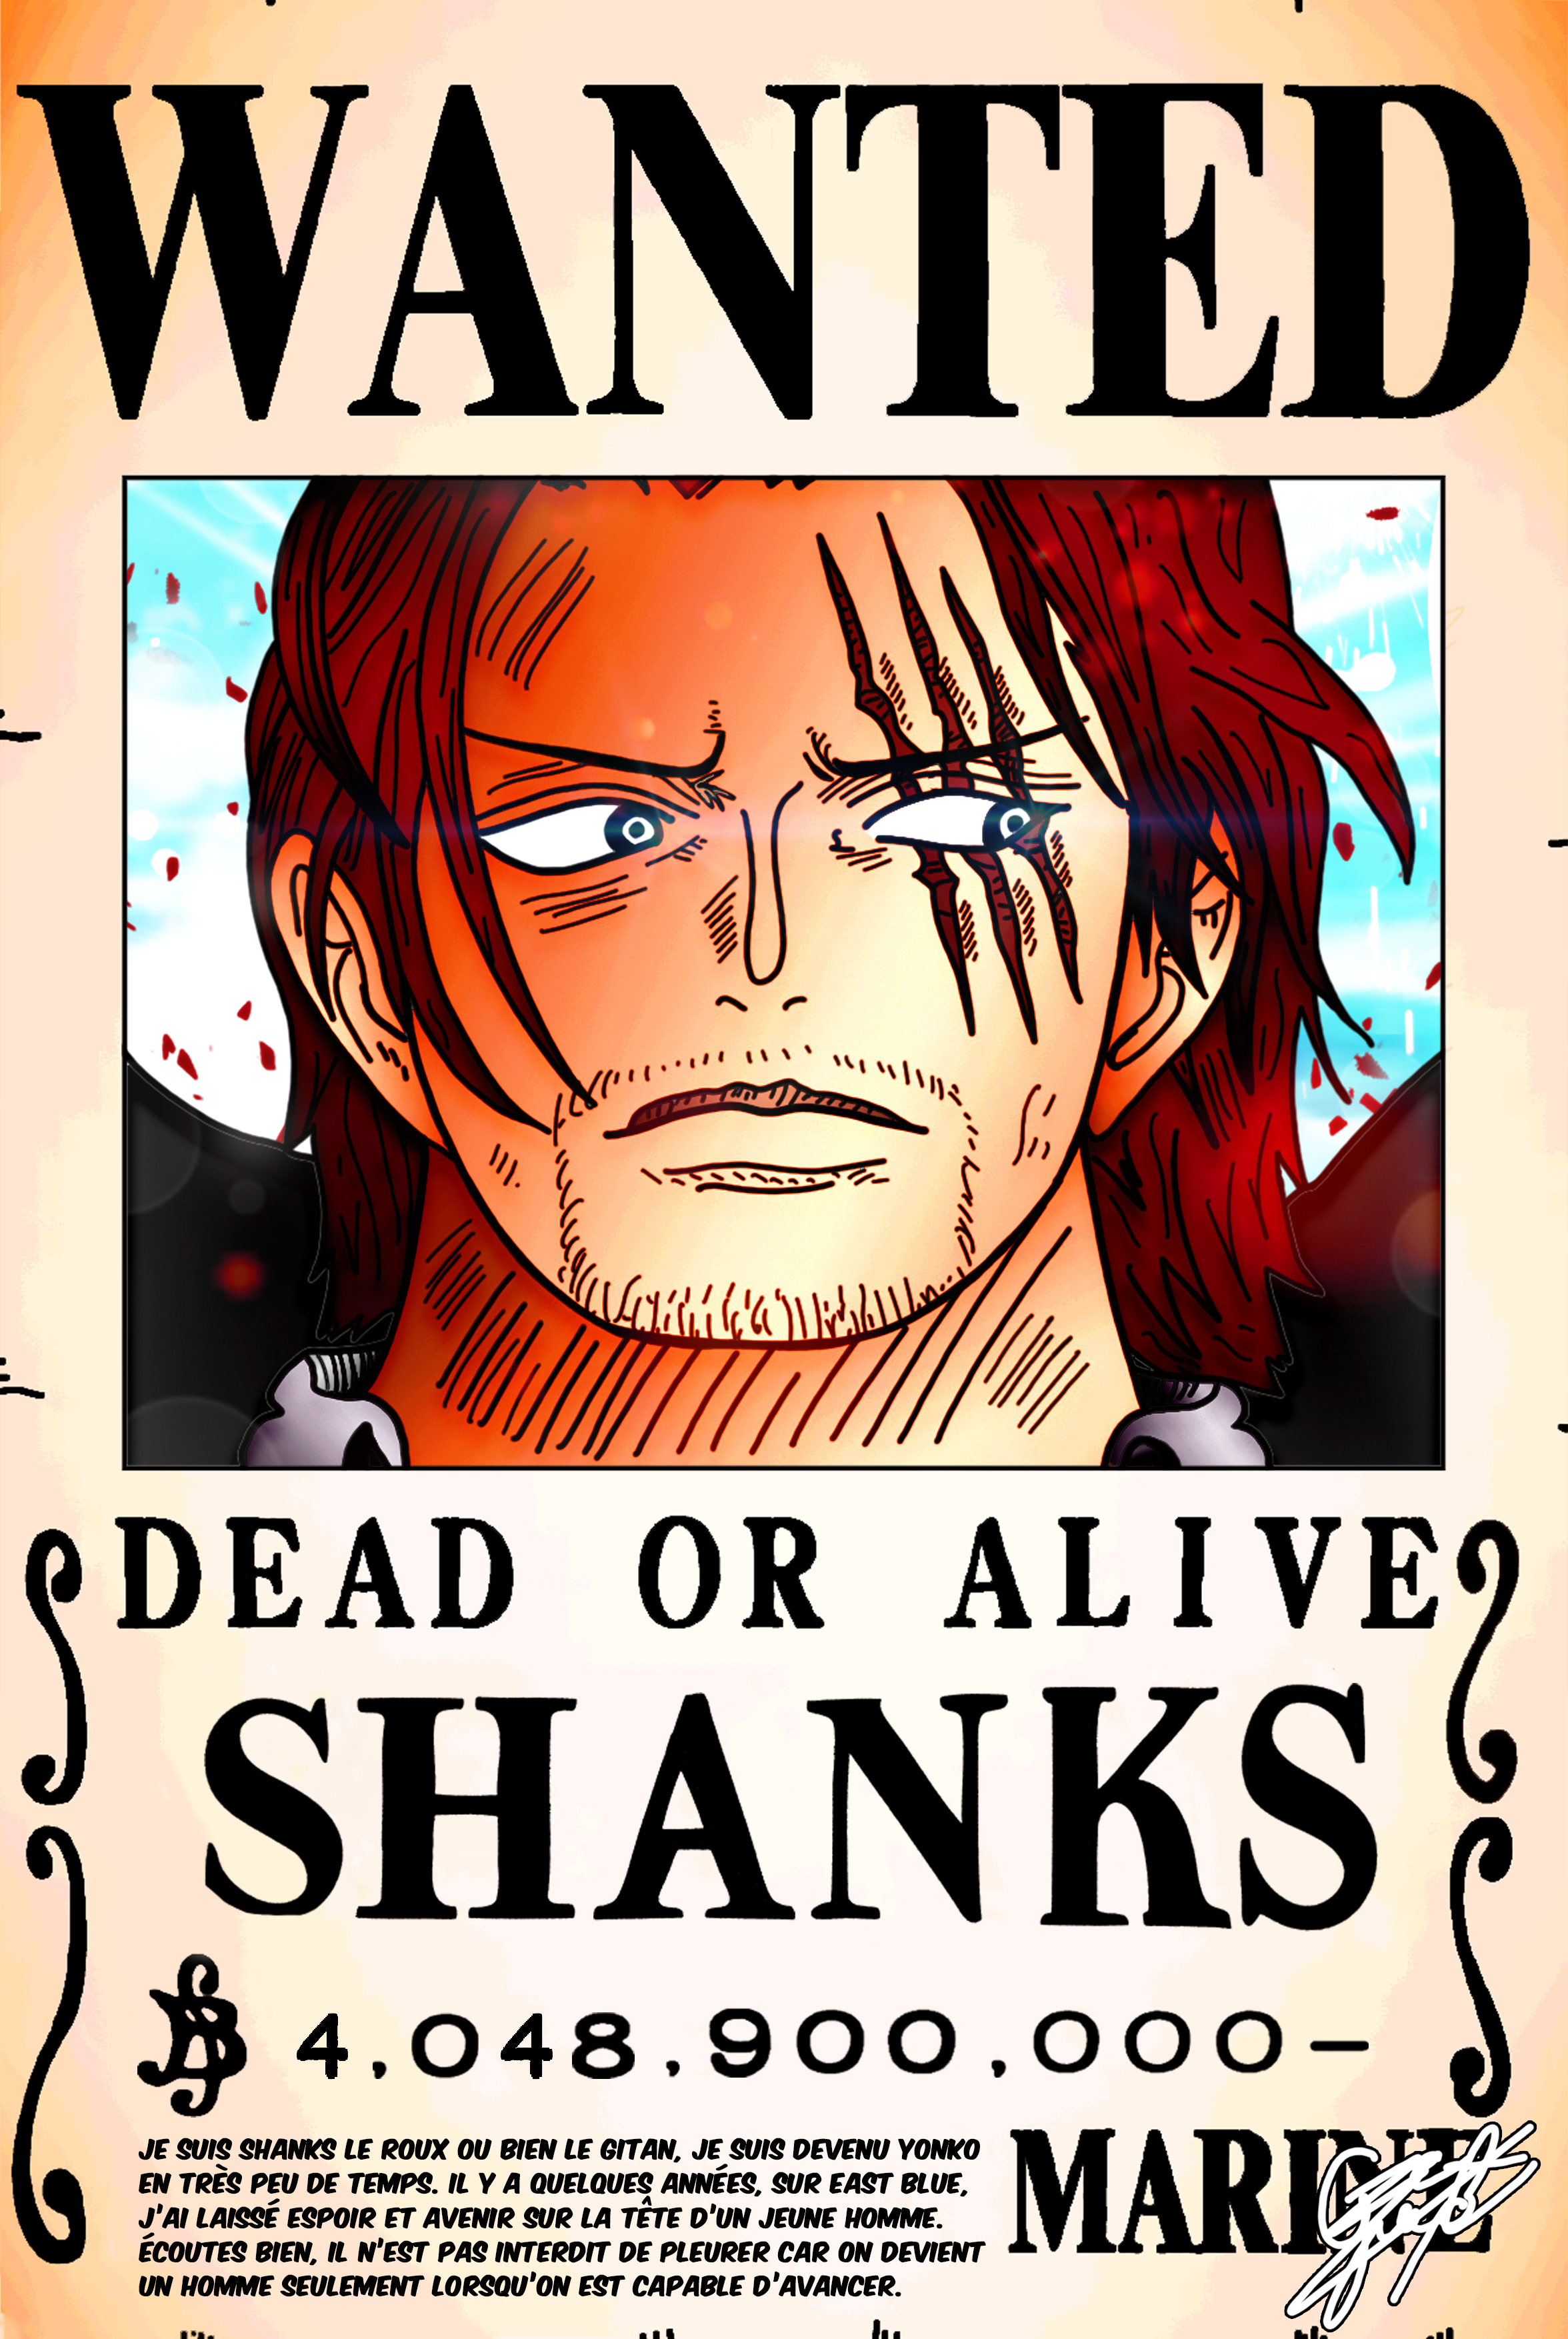 Wanted Poster The Yonko Shanks 40 Billion Berrys By Axel0w